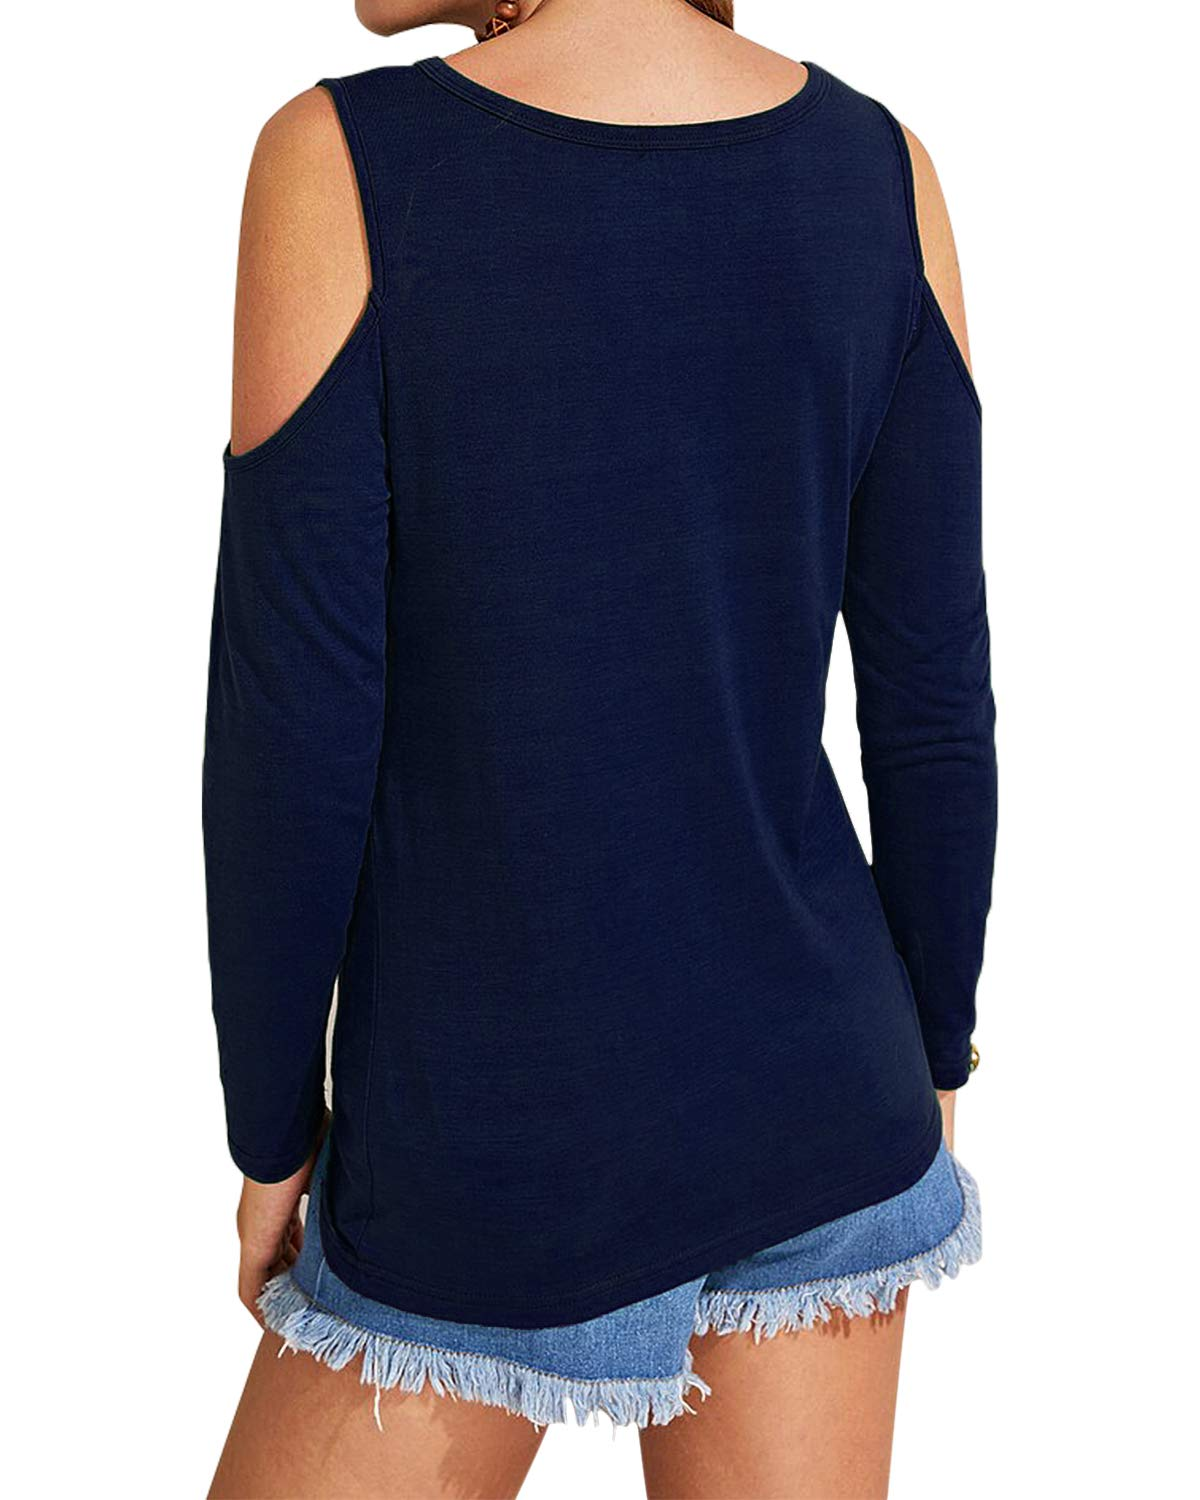 Eanklosco Women's Long Sleeve Cold Shoulder Cut Out T Shirts Casual Knot Tunic Tops (Navy Blue, L)